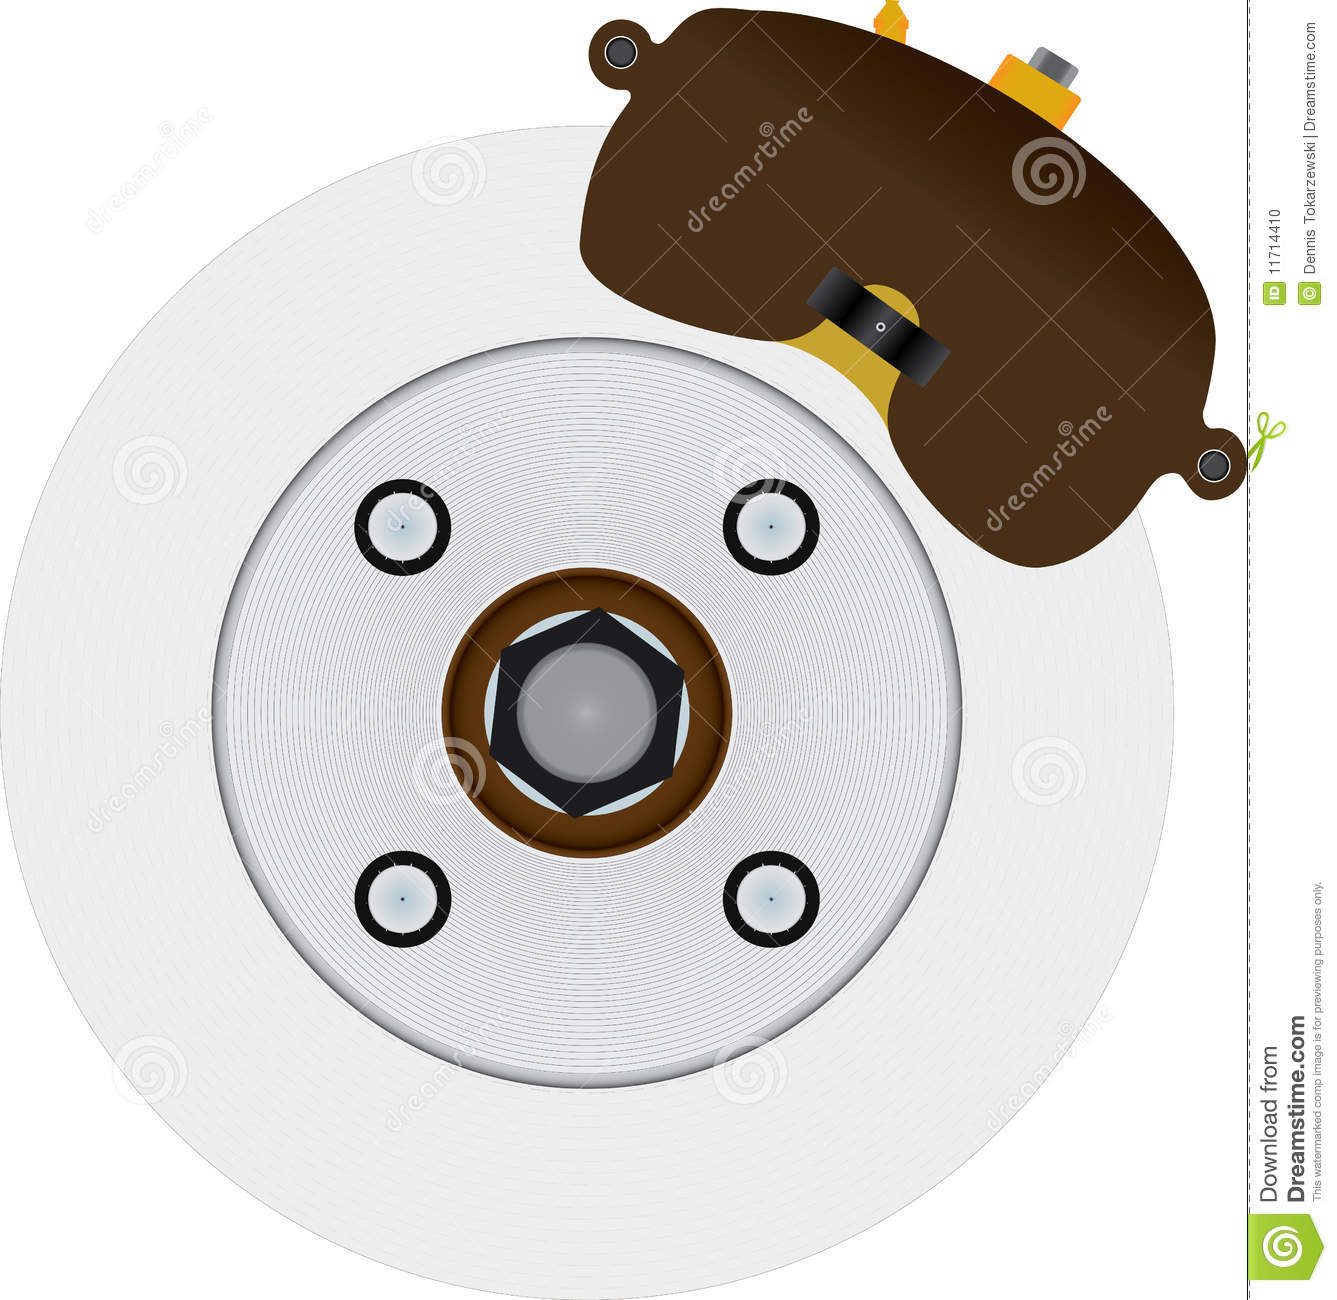 Disc Brake Rotor Stock Illustrations.